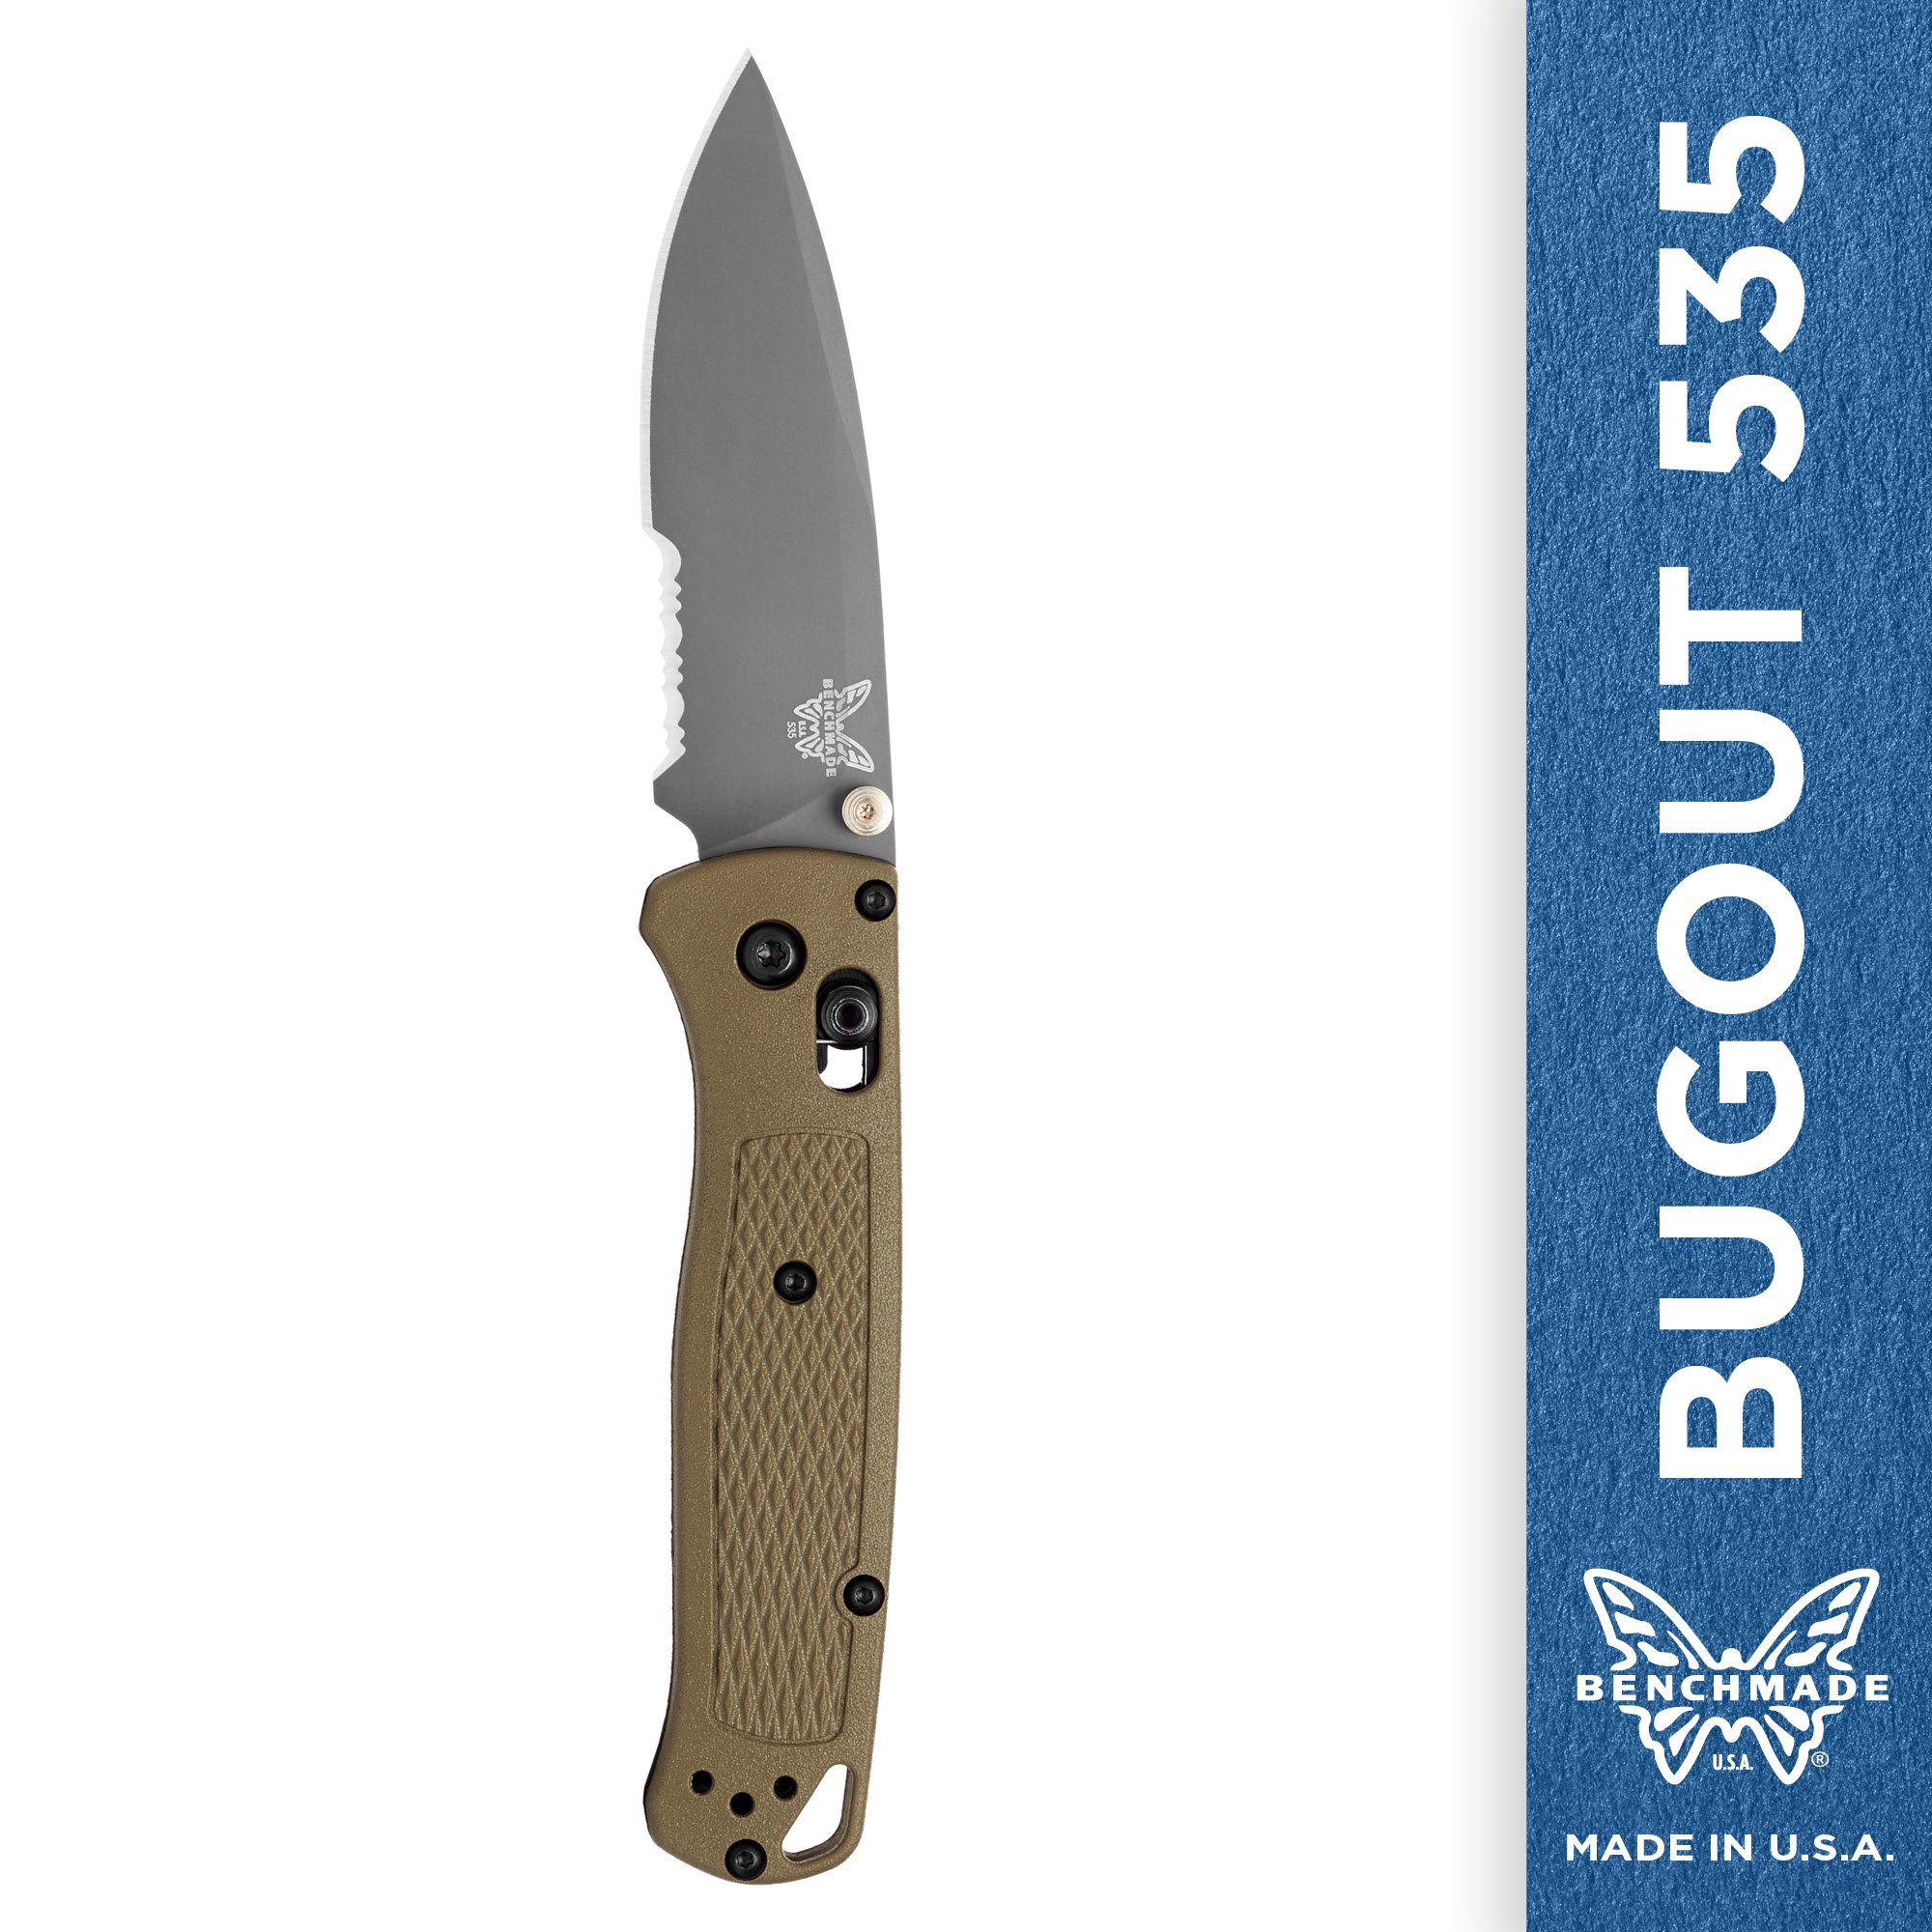 Benchmade - Bugout 535 Folding Knife for Everyday Carry and Camping, Drop-Point Blade, Serrated Edge, Coated Finish, Green Handle